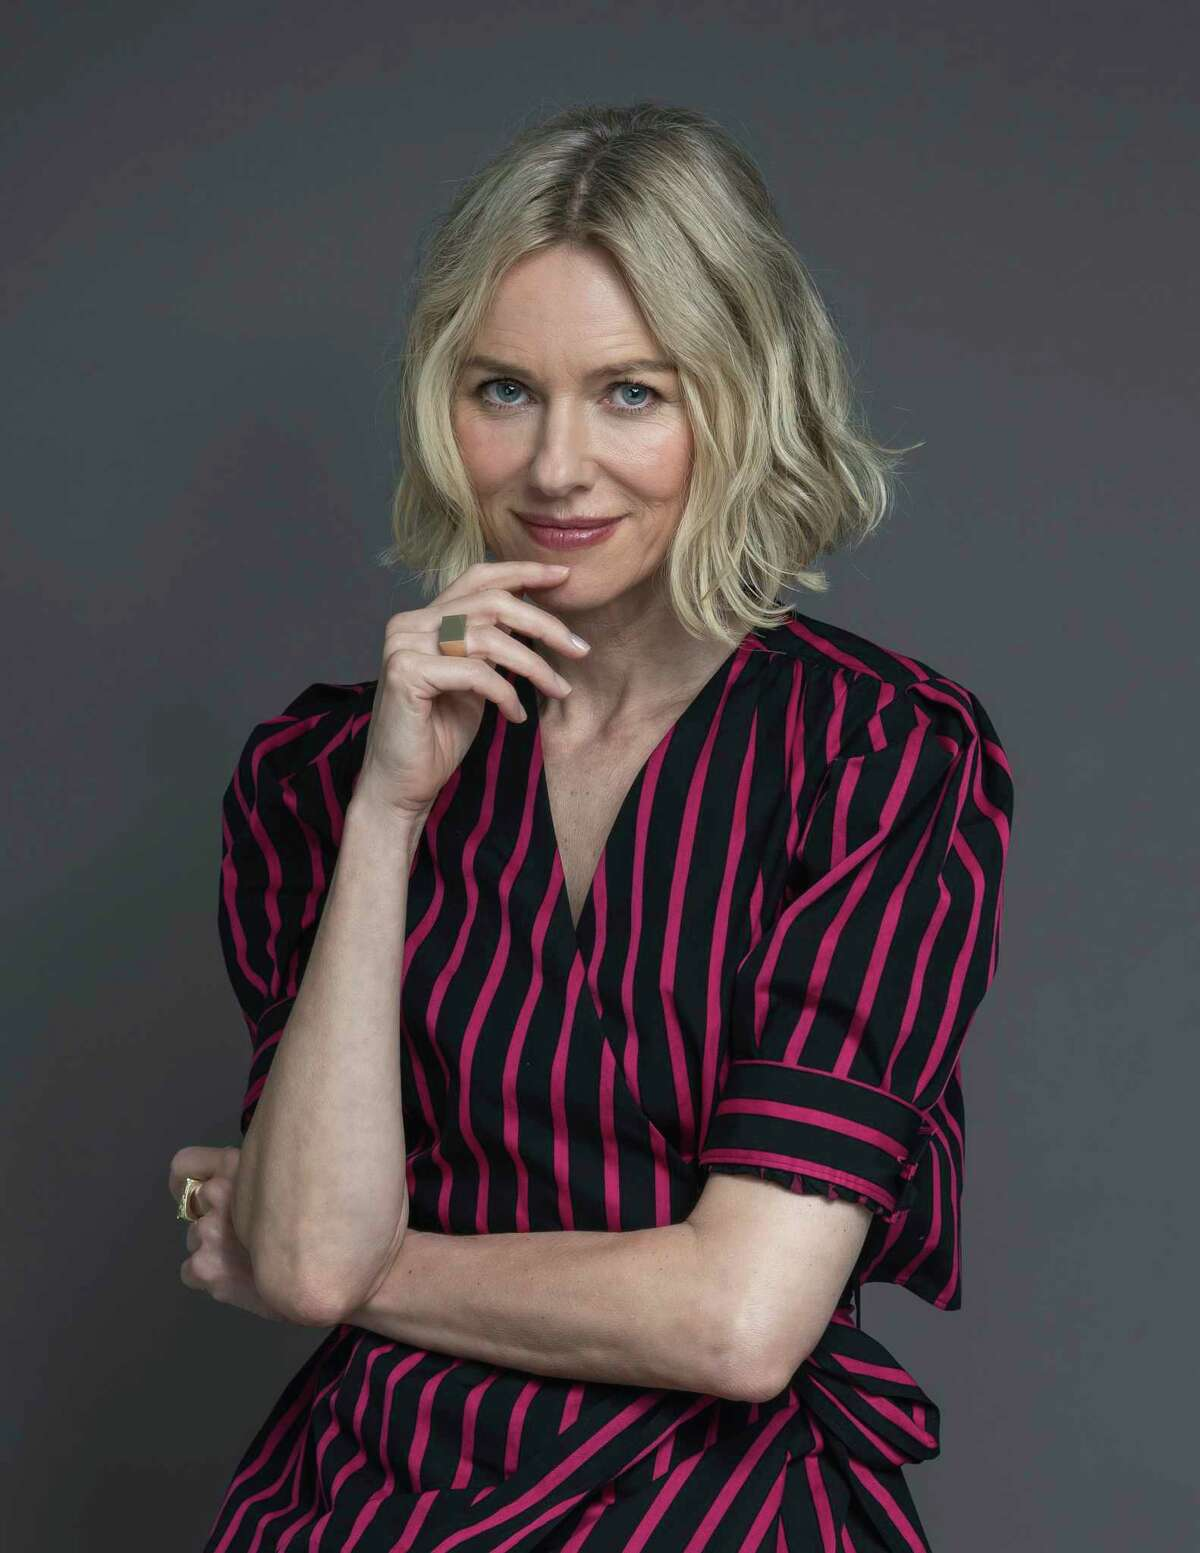 This June 17, 2019 photo, actress Naomi Watts poses for a portrait in New York. Watts stars in the film ?Ophelia,? and the Showtime series ?The Loudest Voice,? based on the rise of Fox News and fall of Roger Ailes. (Photo by Christopher Smith/Invision/AP)